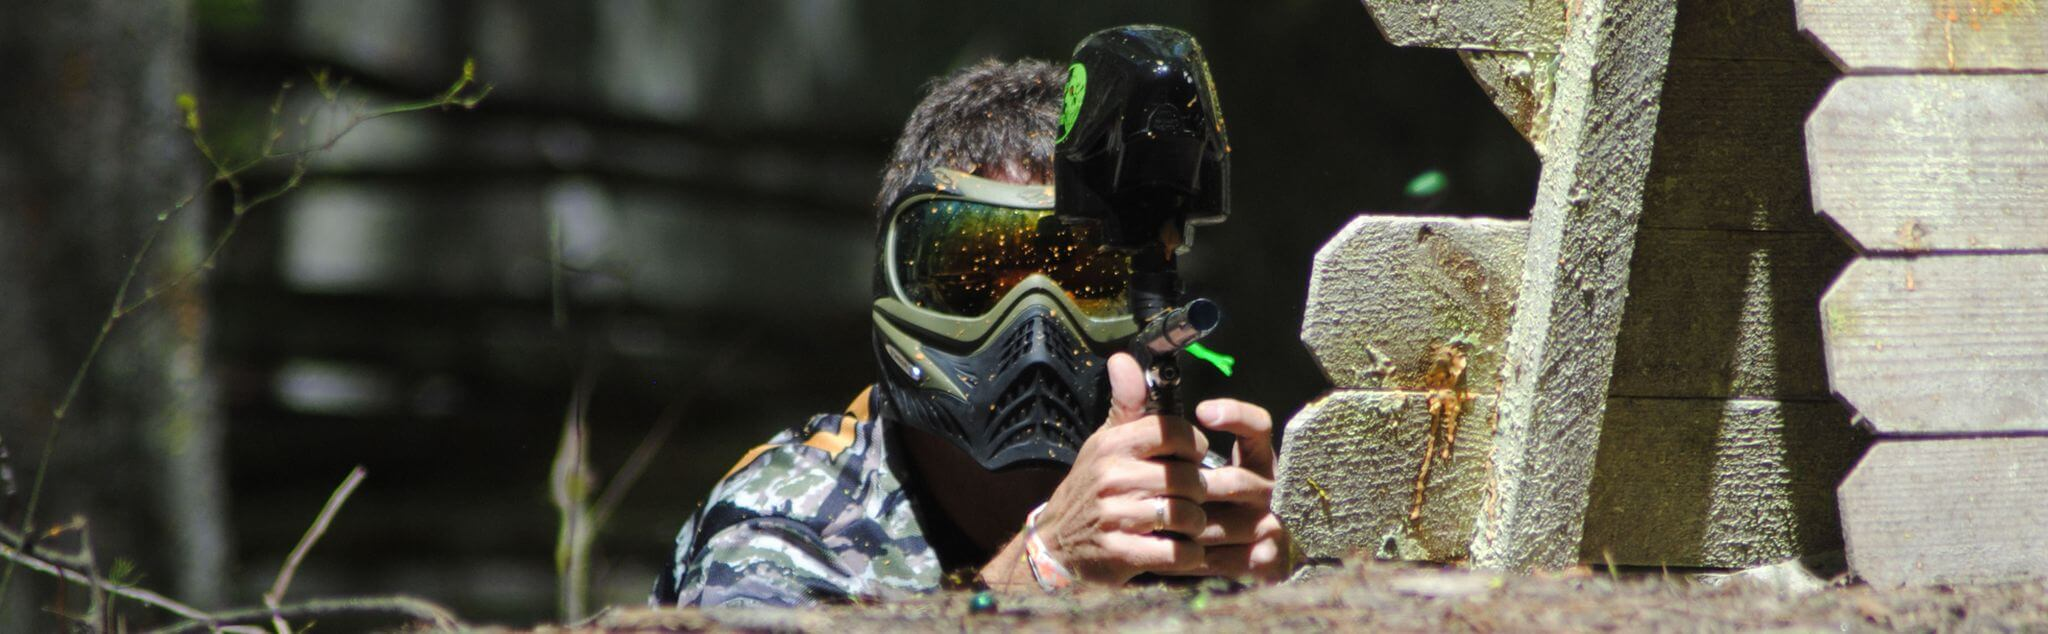 Paintball dans Jura